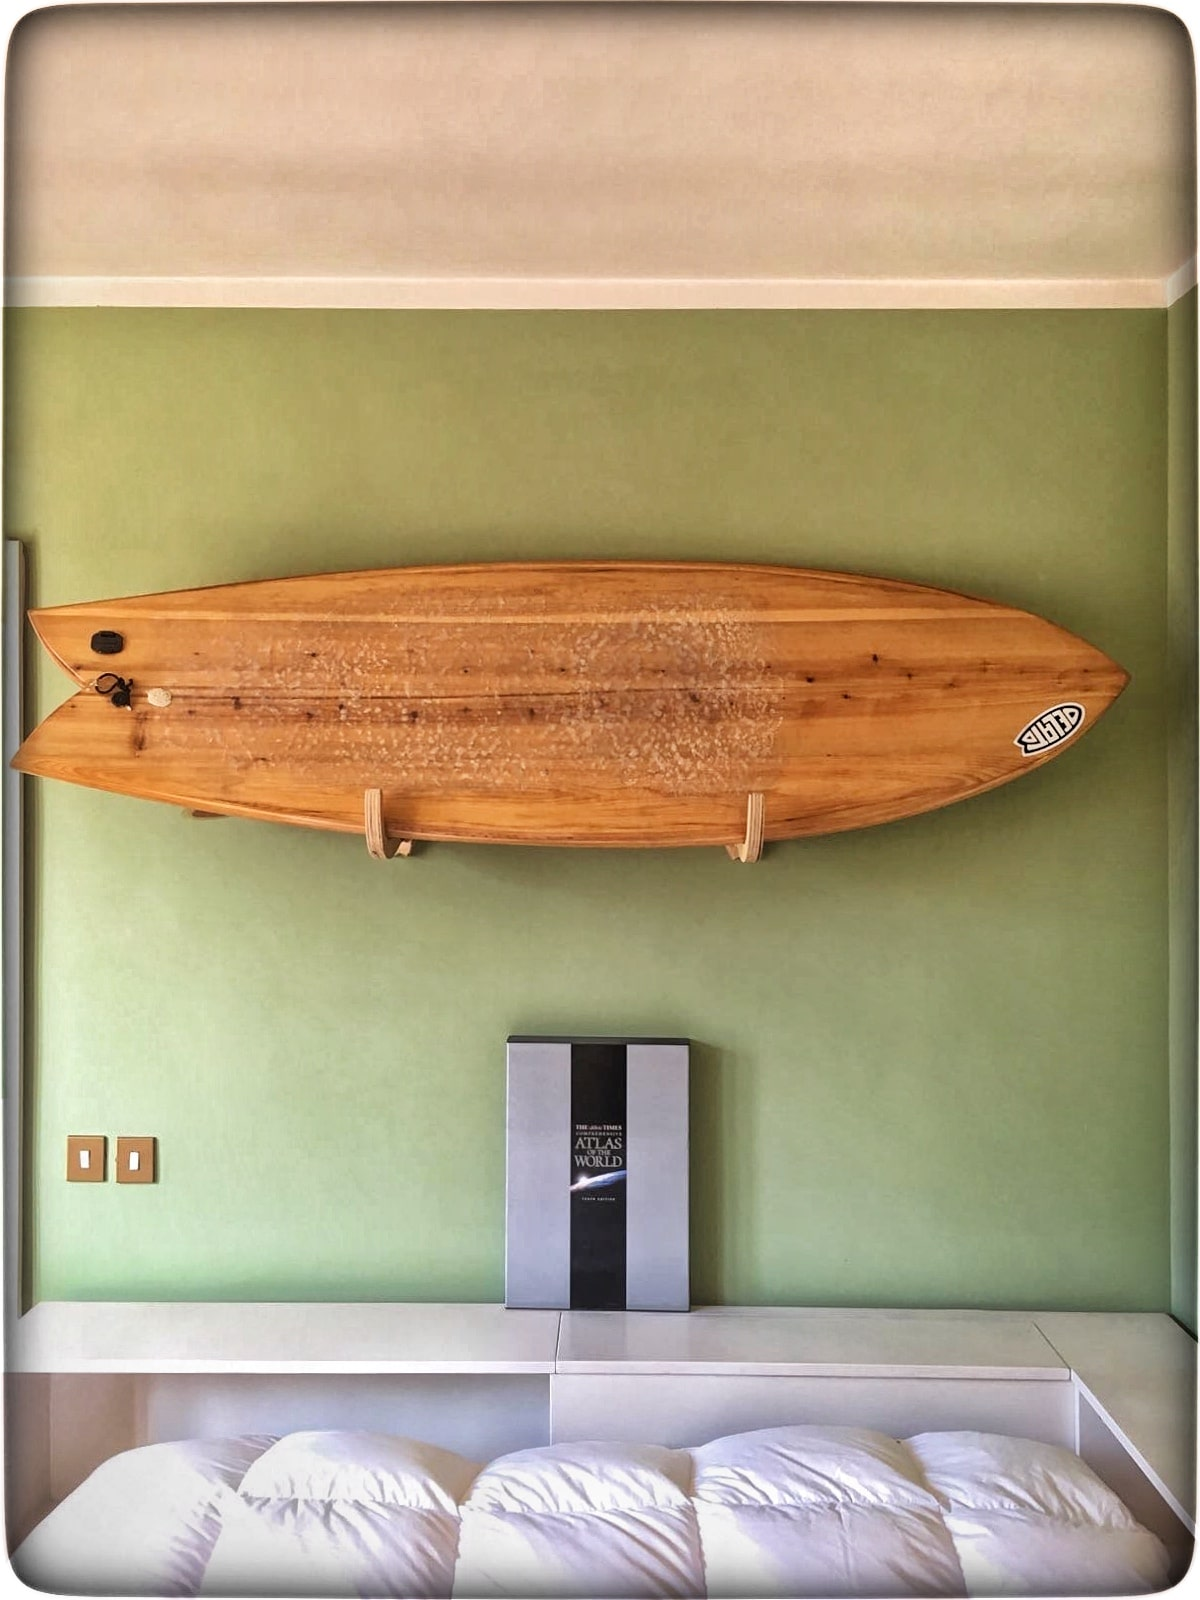 wall photo surfboards x surfboard surf image in rack decorative wood australia of decor art